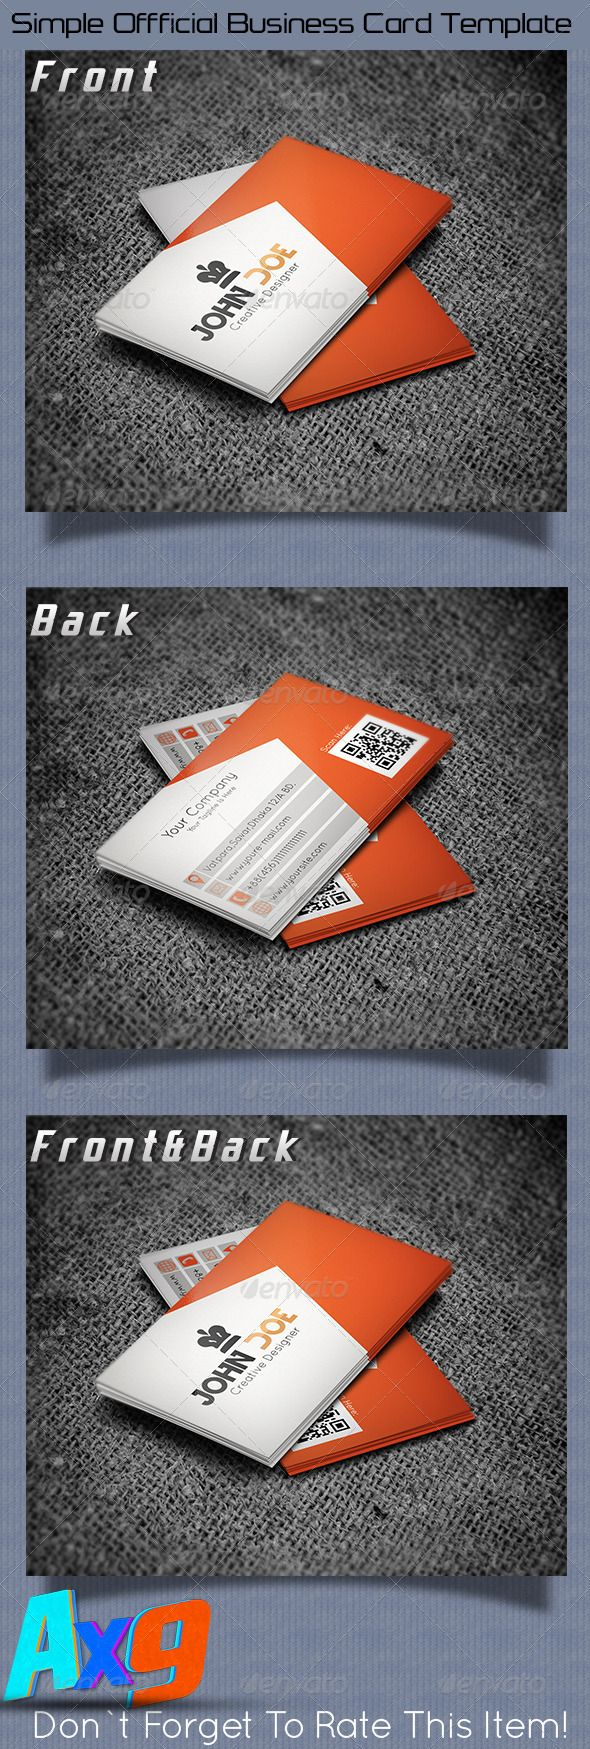 Simple Official Bussines Card  Template  #GraphicRiver